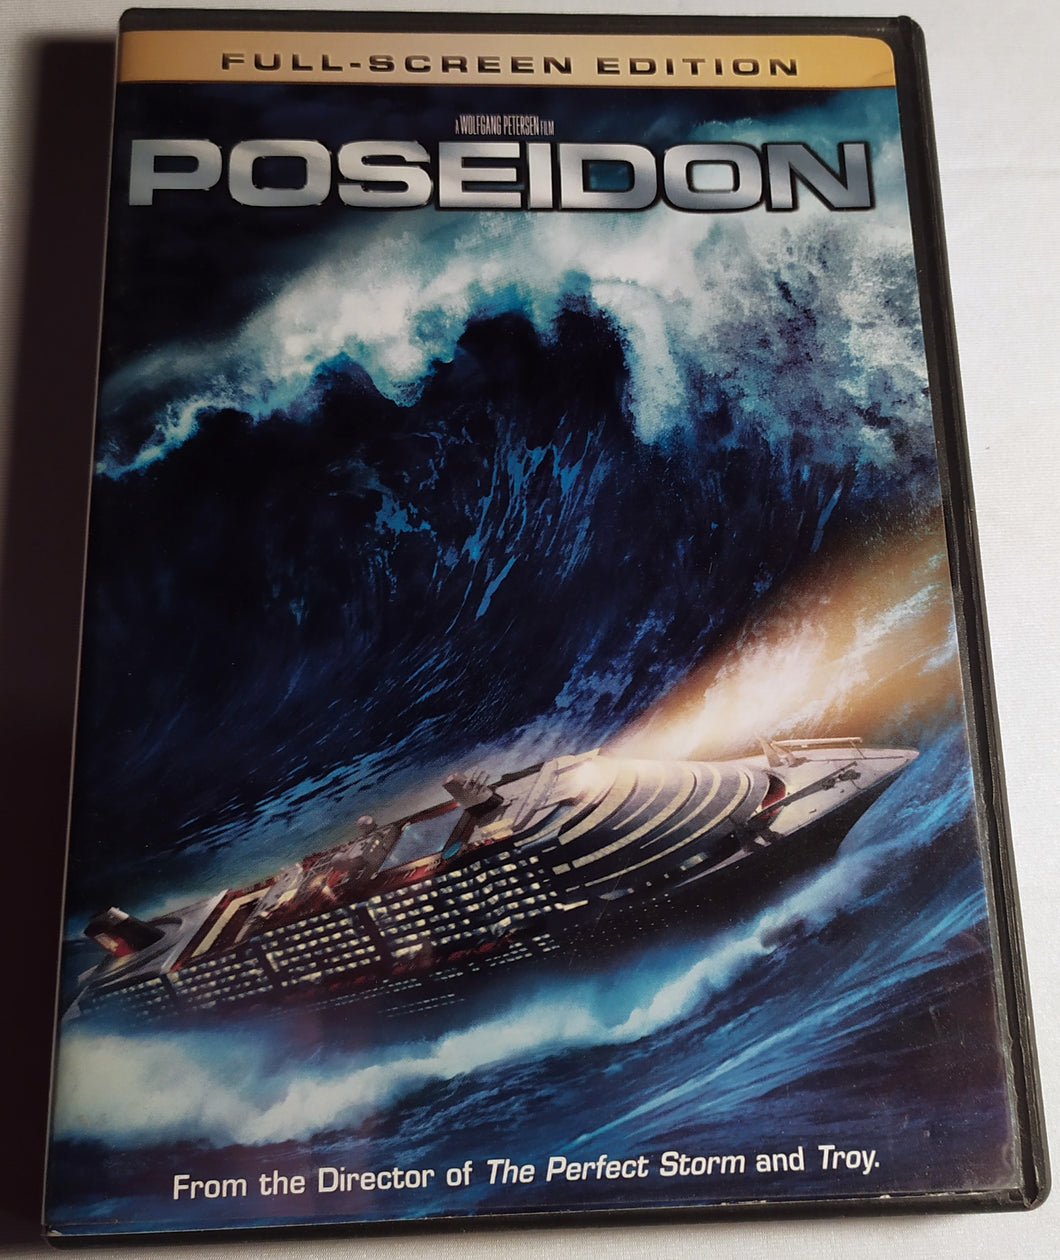 POSEIDON – From The Director Of The Perfect Storm And Troy